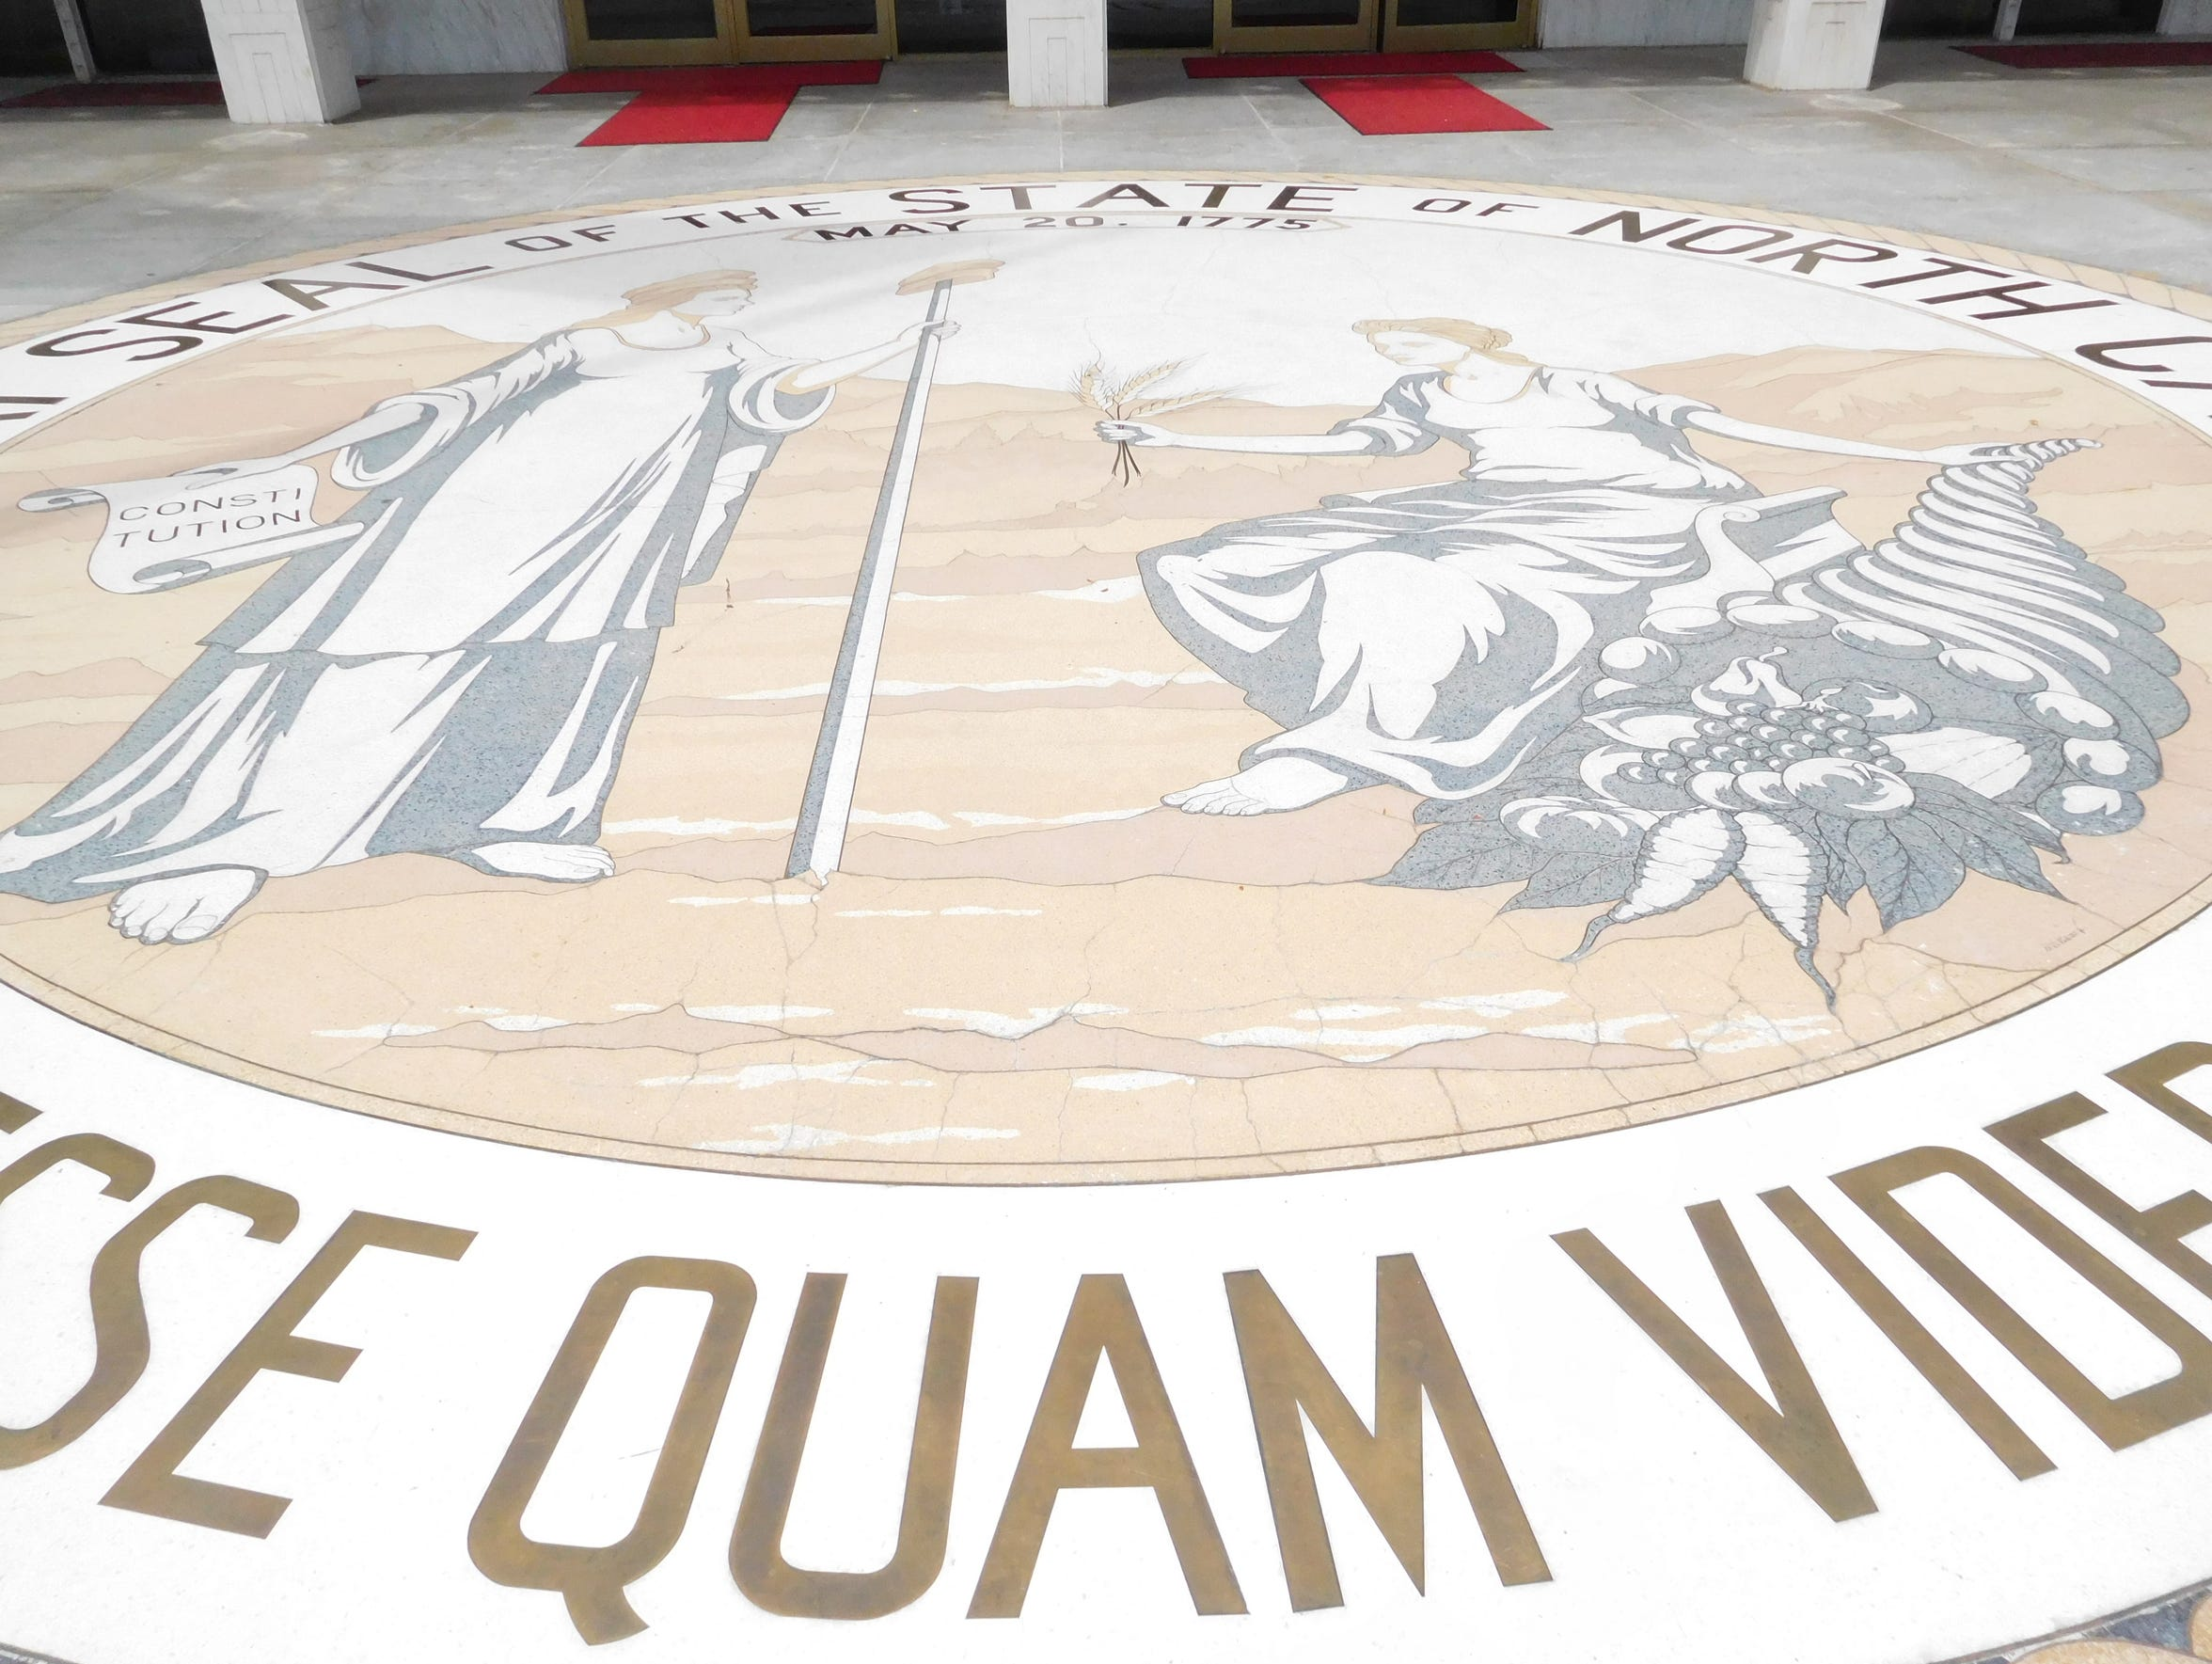 The N.C. state seal is embedded in the floor of the